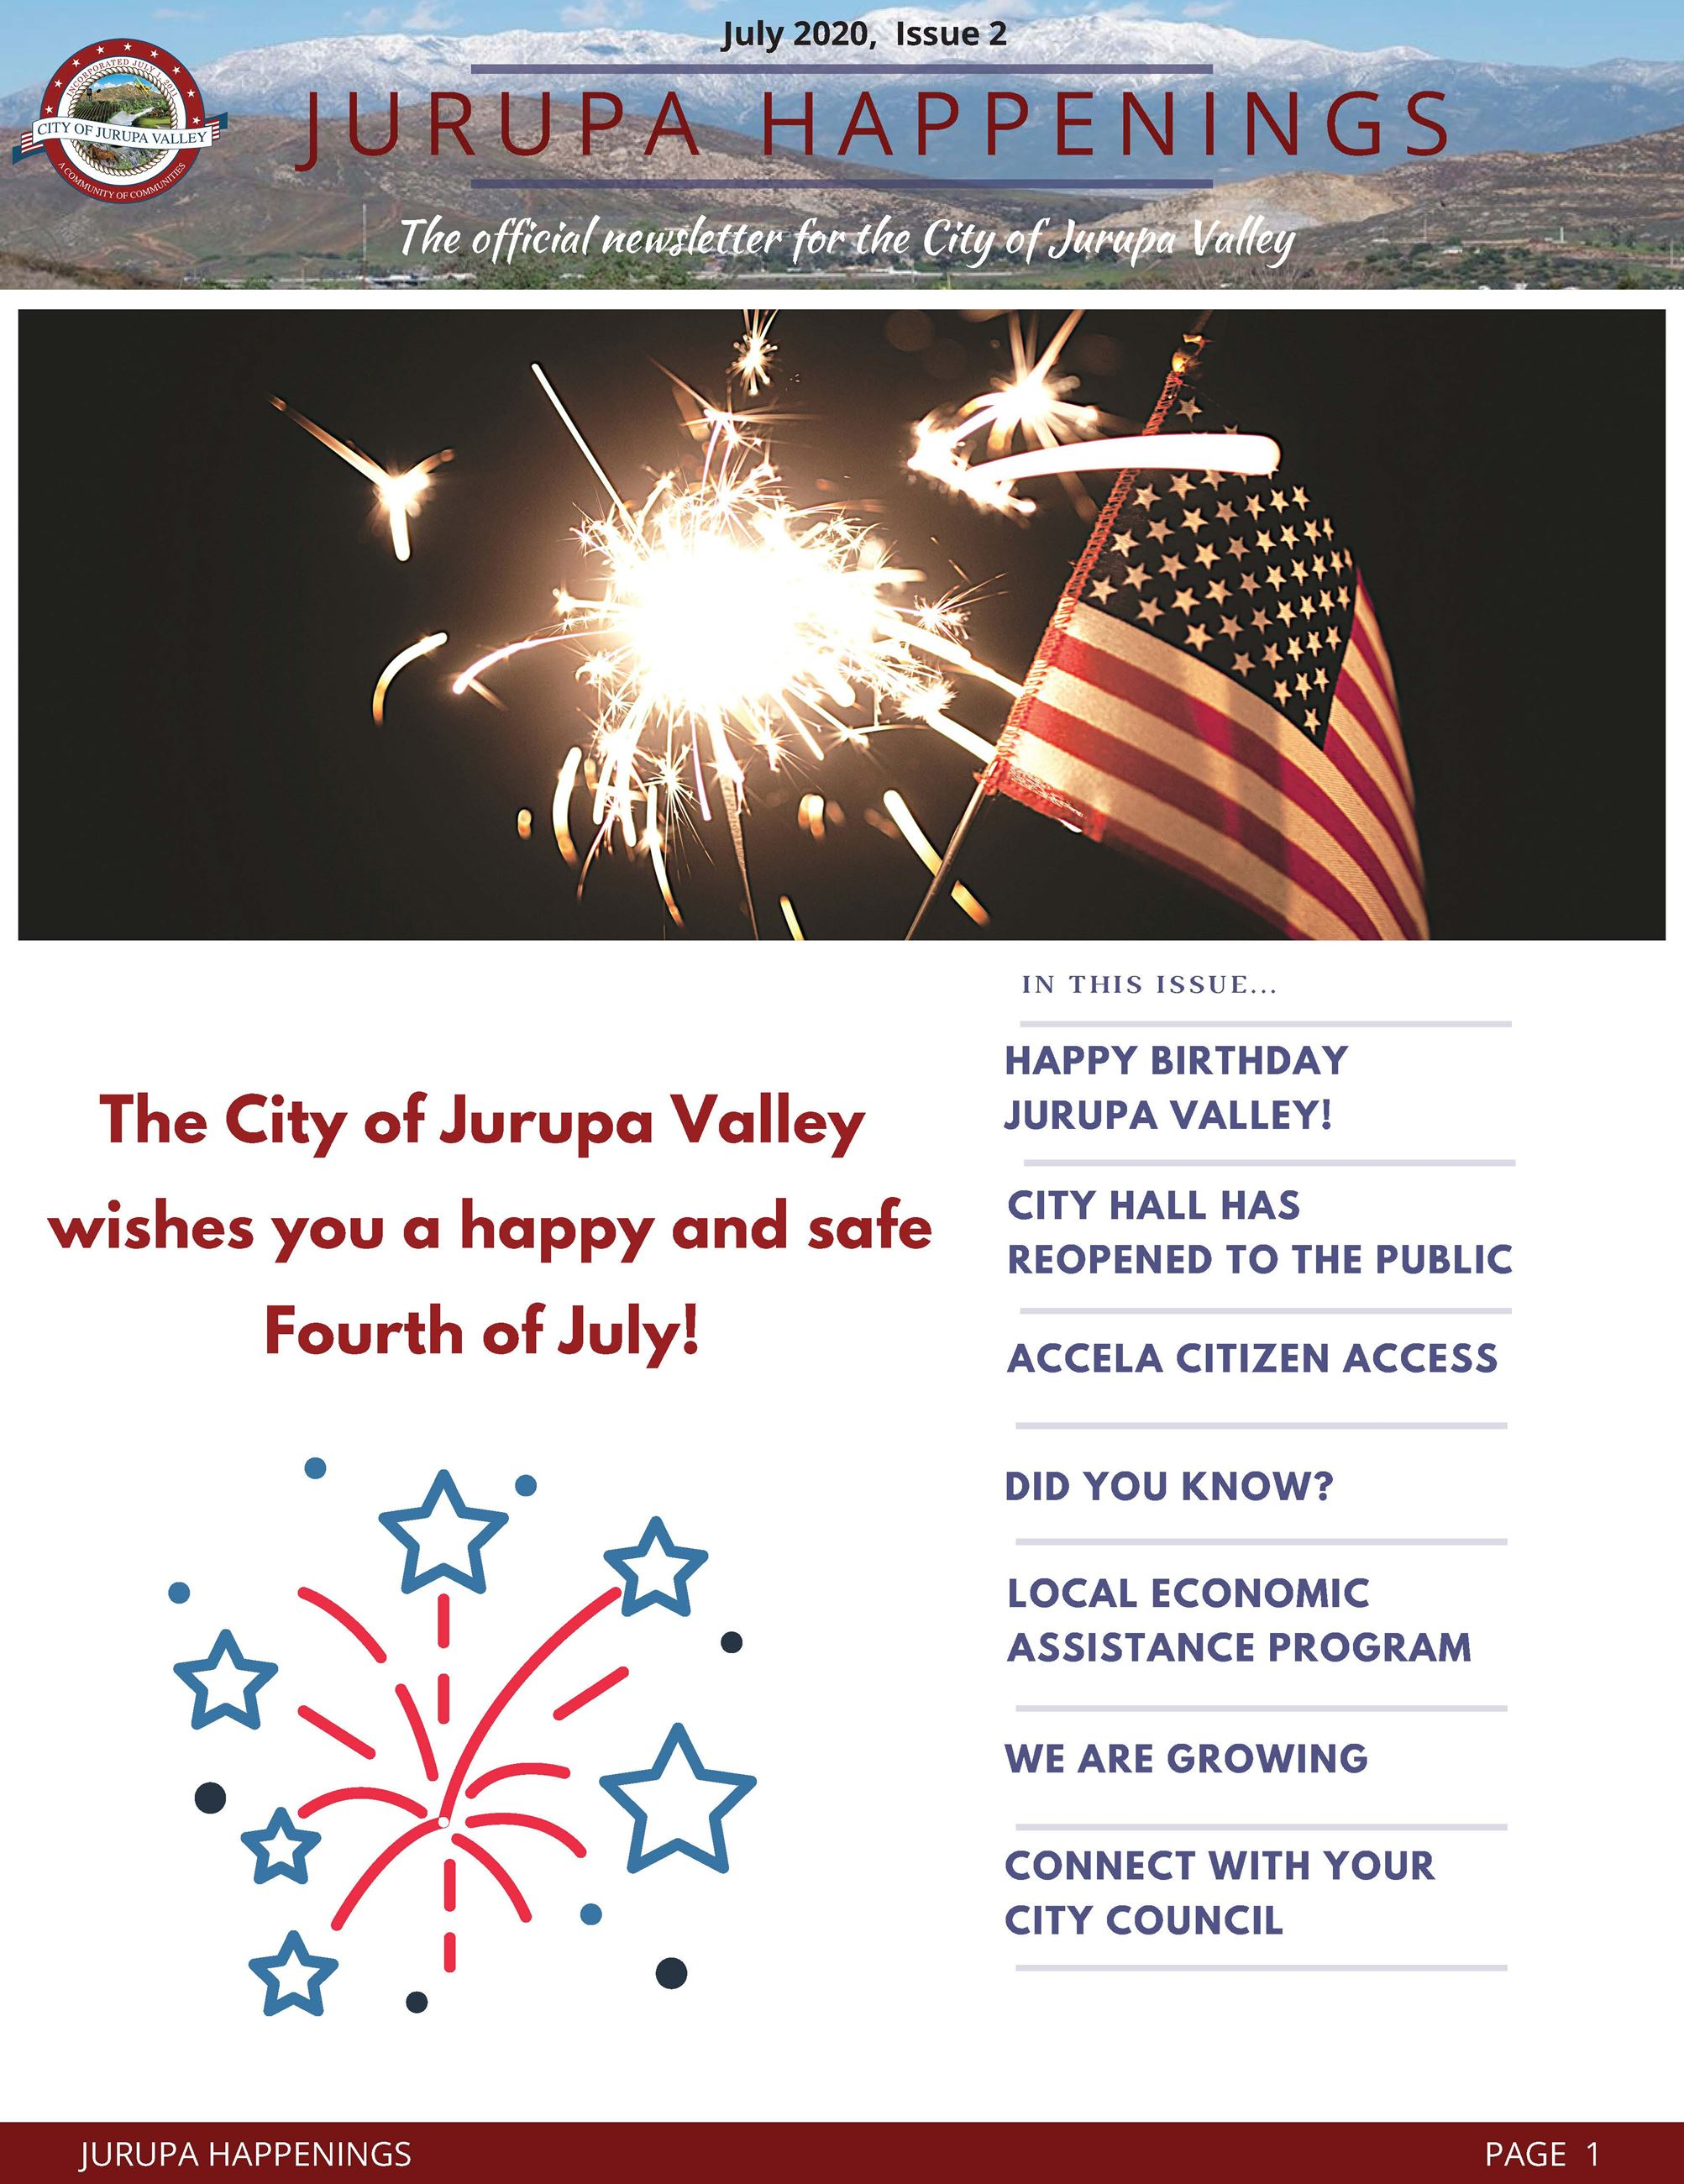 Jurupa Highlights eNewsletter - issue 2 July 2020 Opens in new window